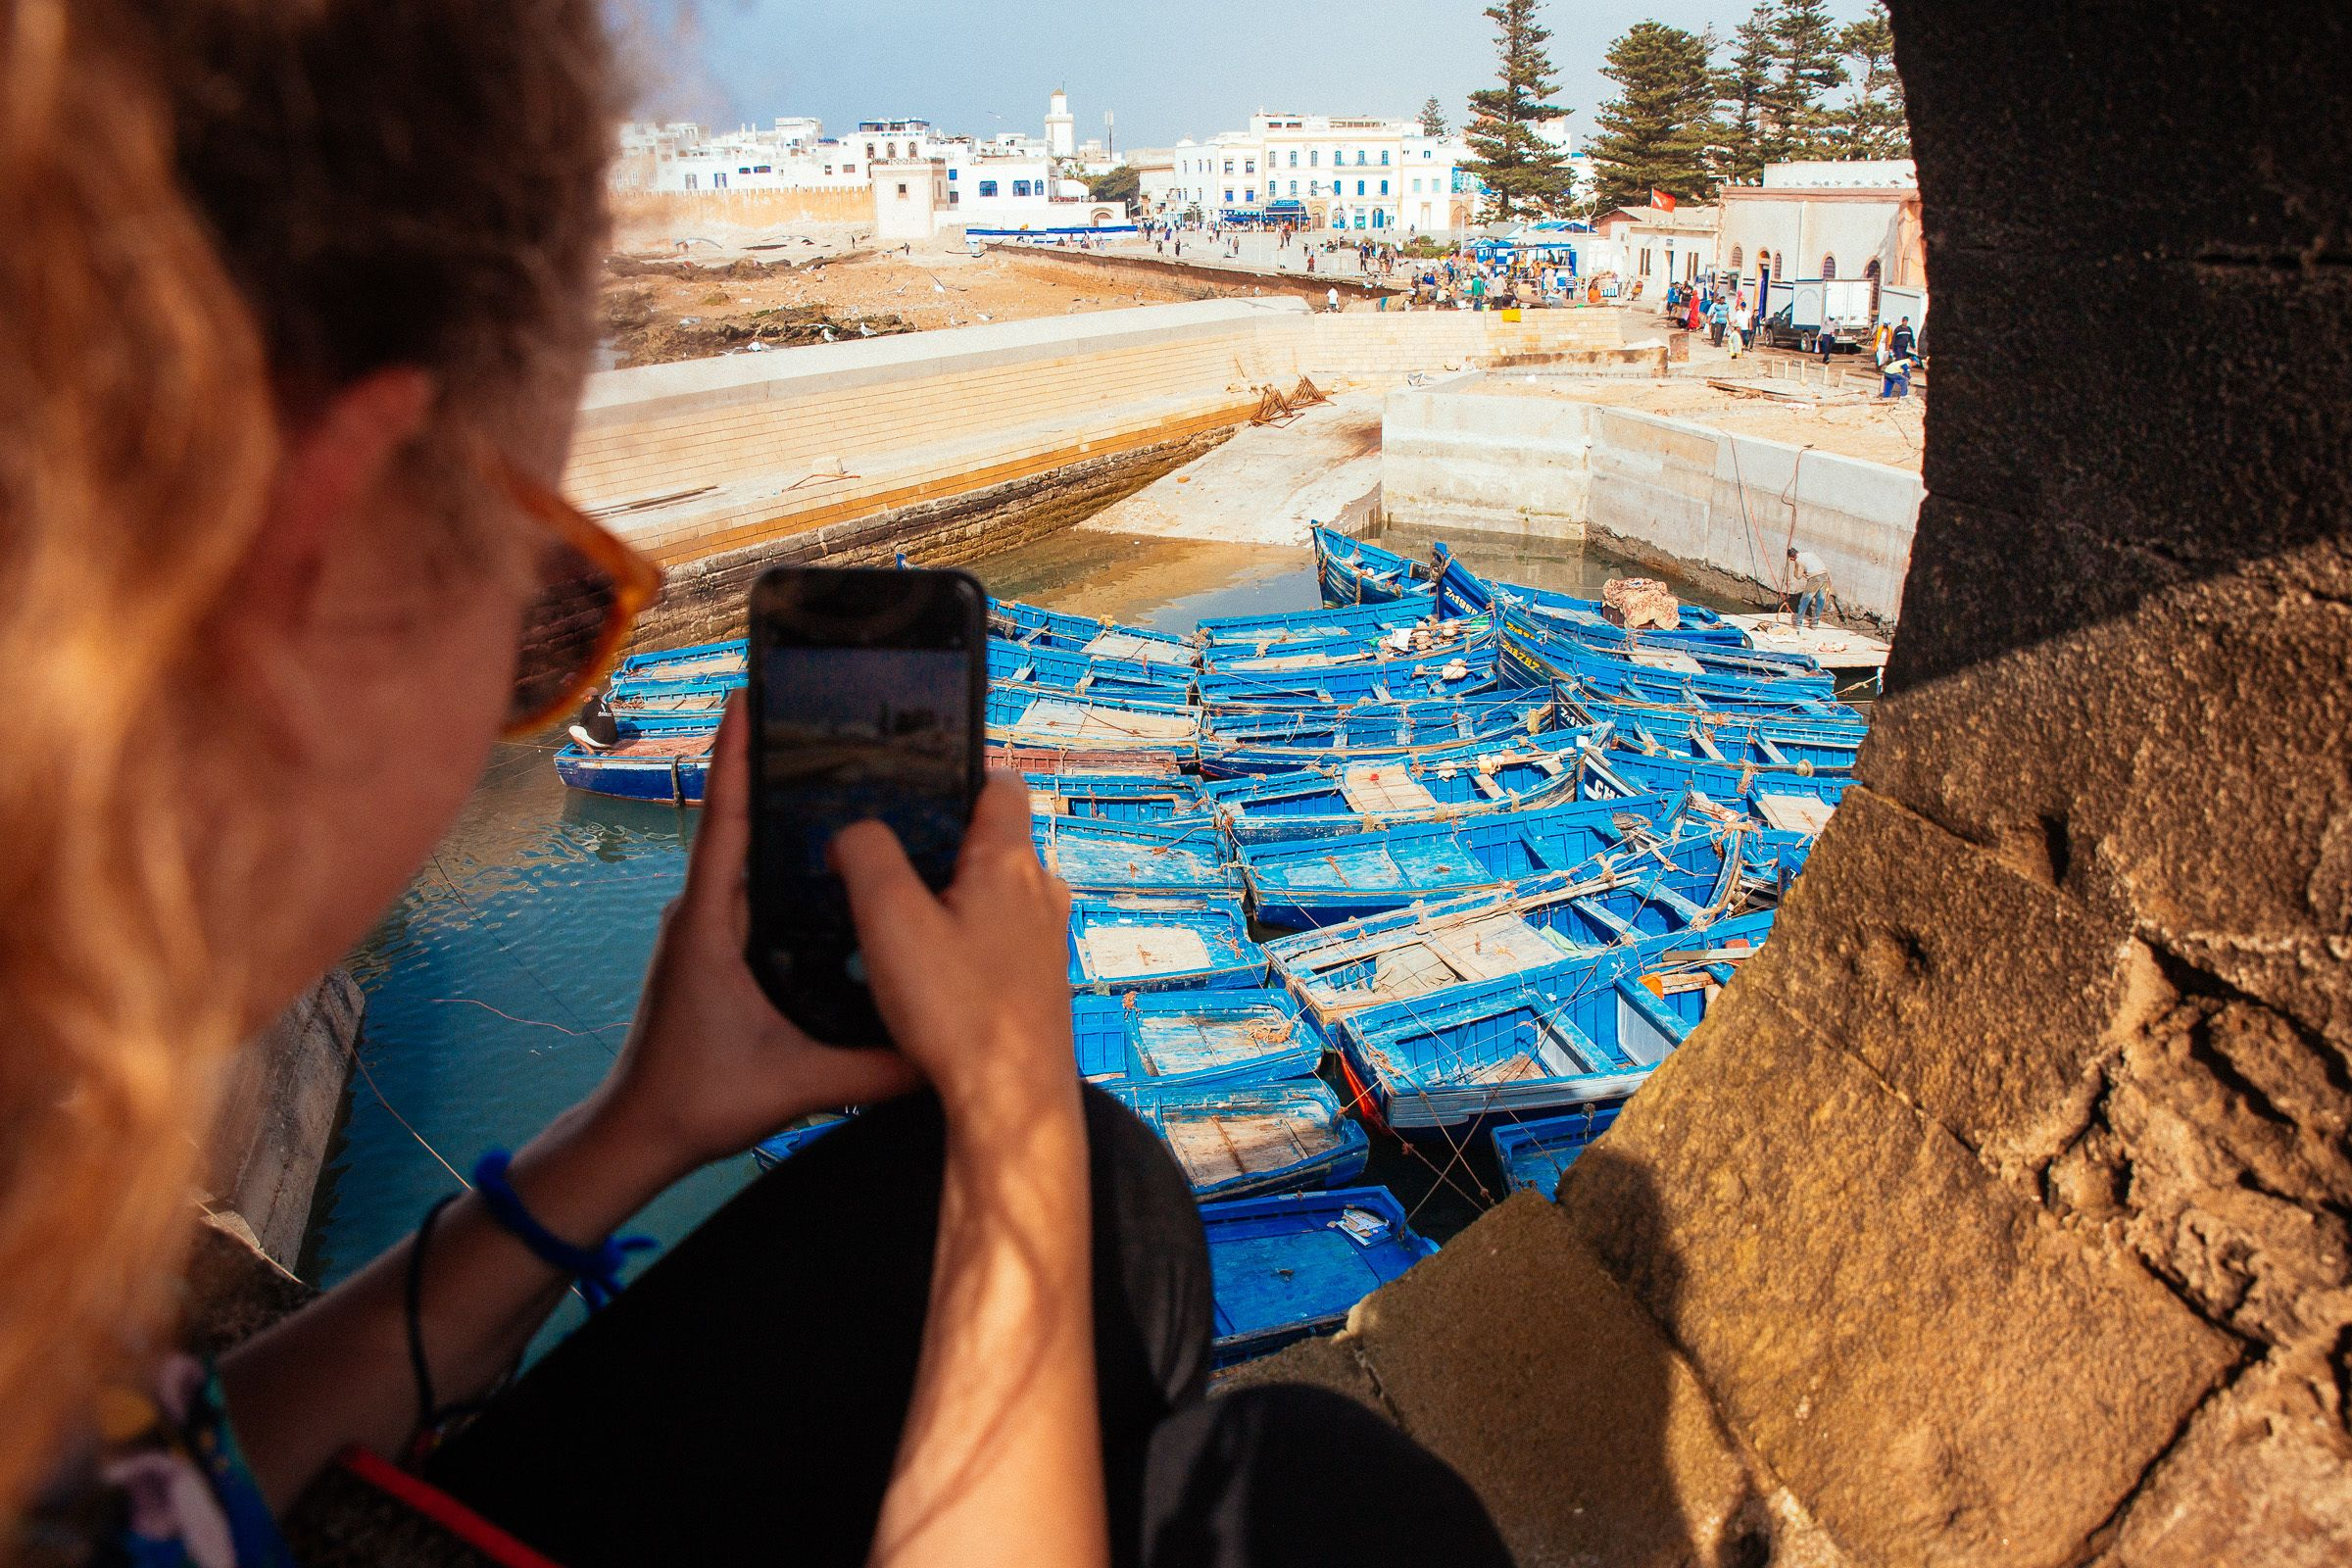 Person taking pictures of boats in Essaouira